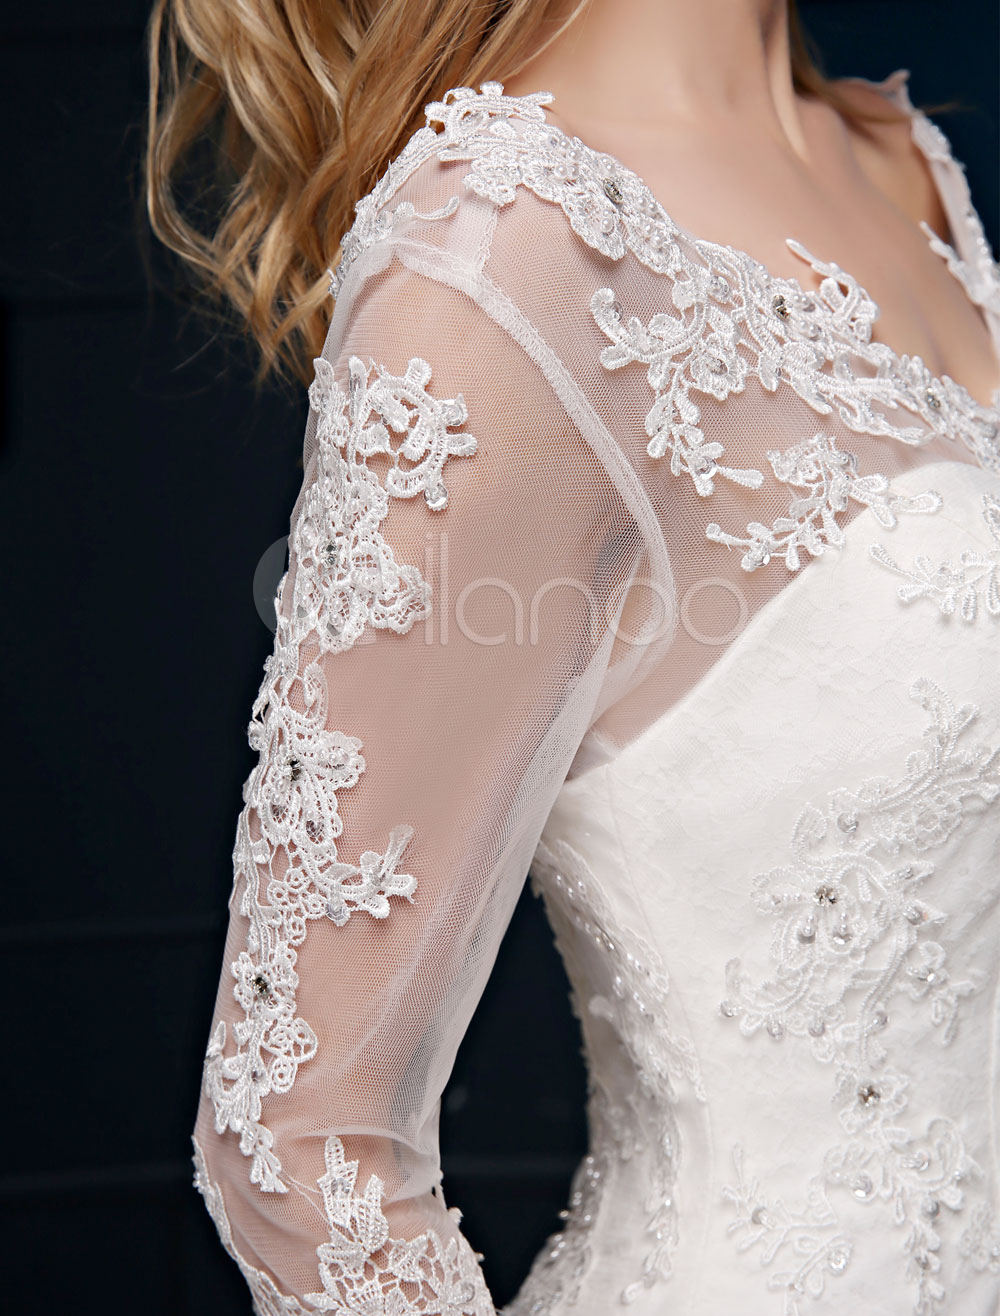 4fc53459e8 ... Mermaid Wedding Dress Lace Long Sleeve Bridal Dress V Neck Beaded  Backless Slim Fit Ivory Wedding